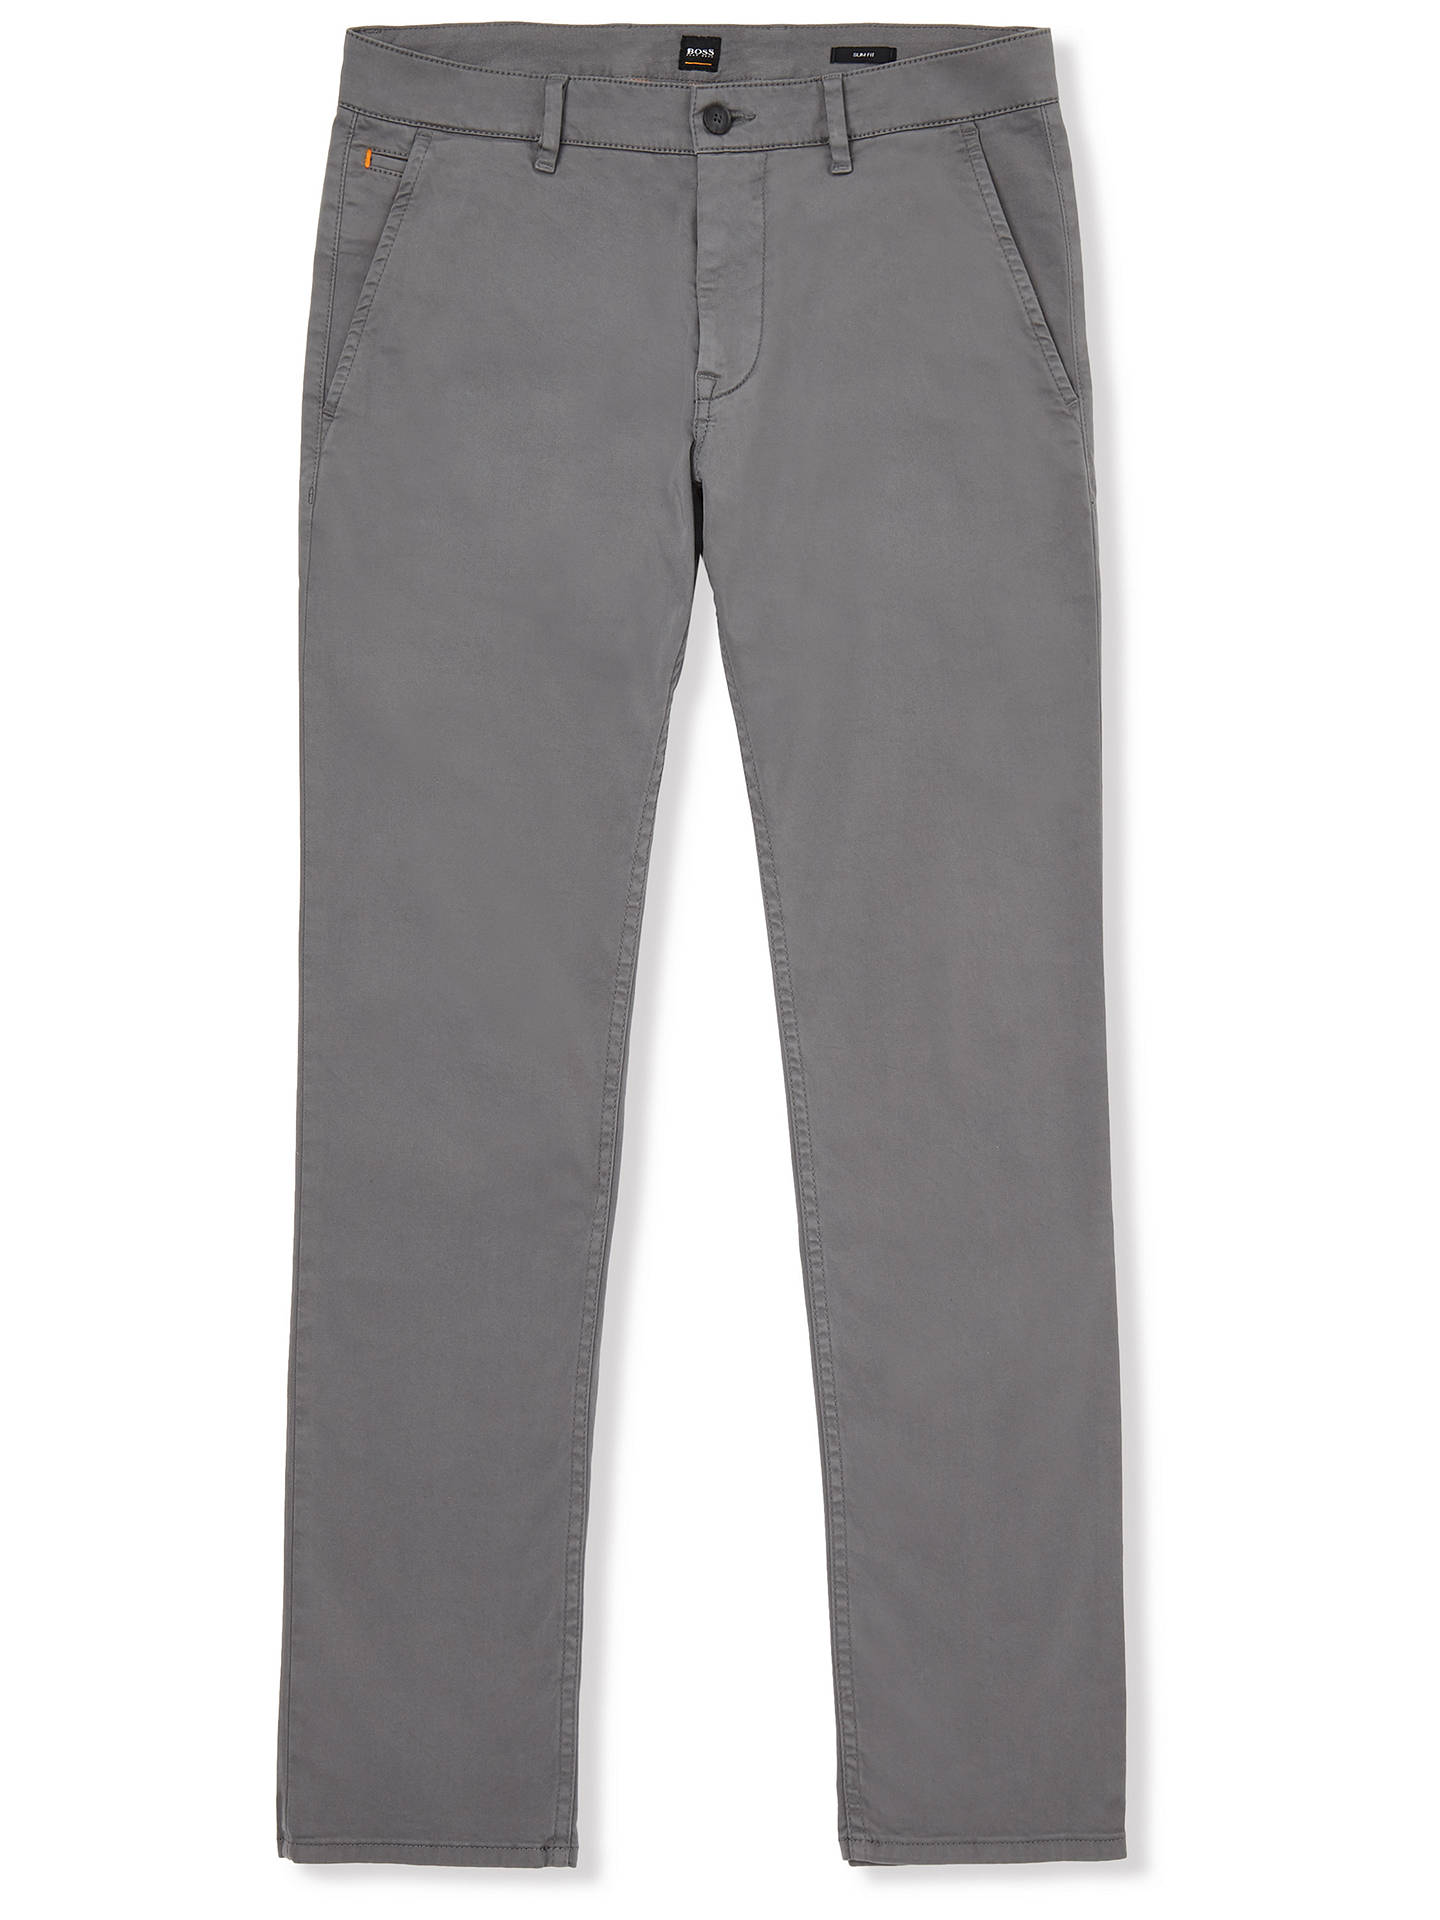 Buy BOSS Schino Slim Chinos, Dark Grey, 30R Online at johnlewis.com